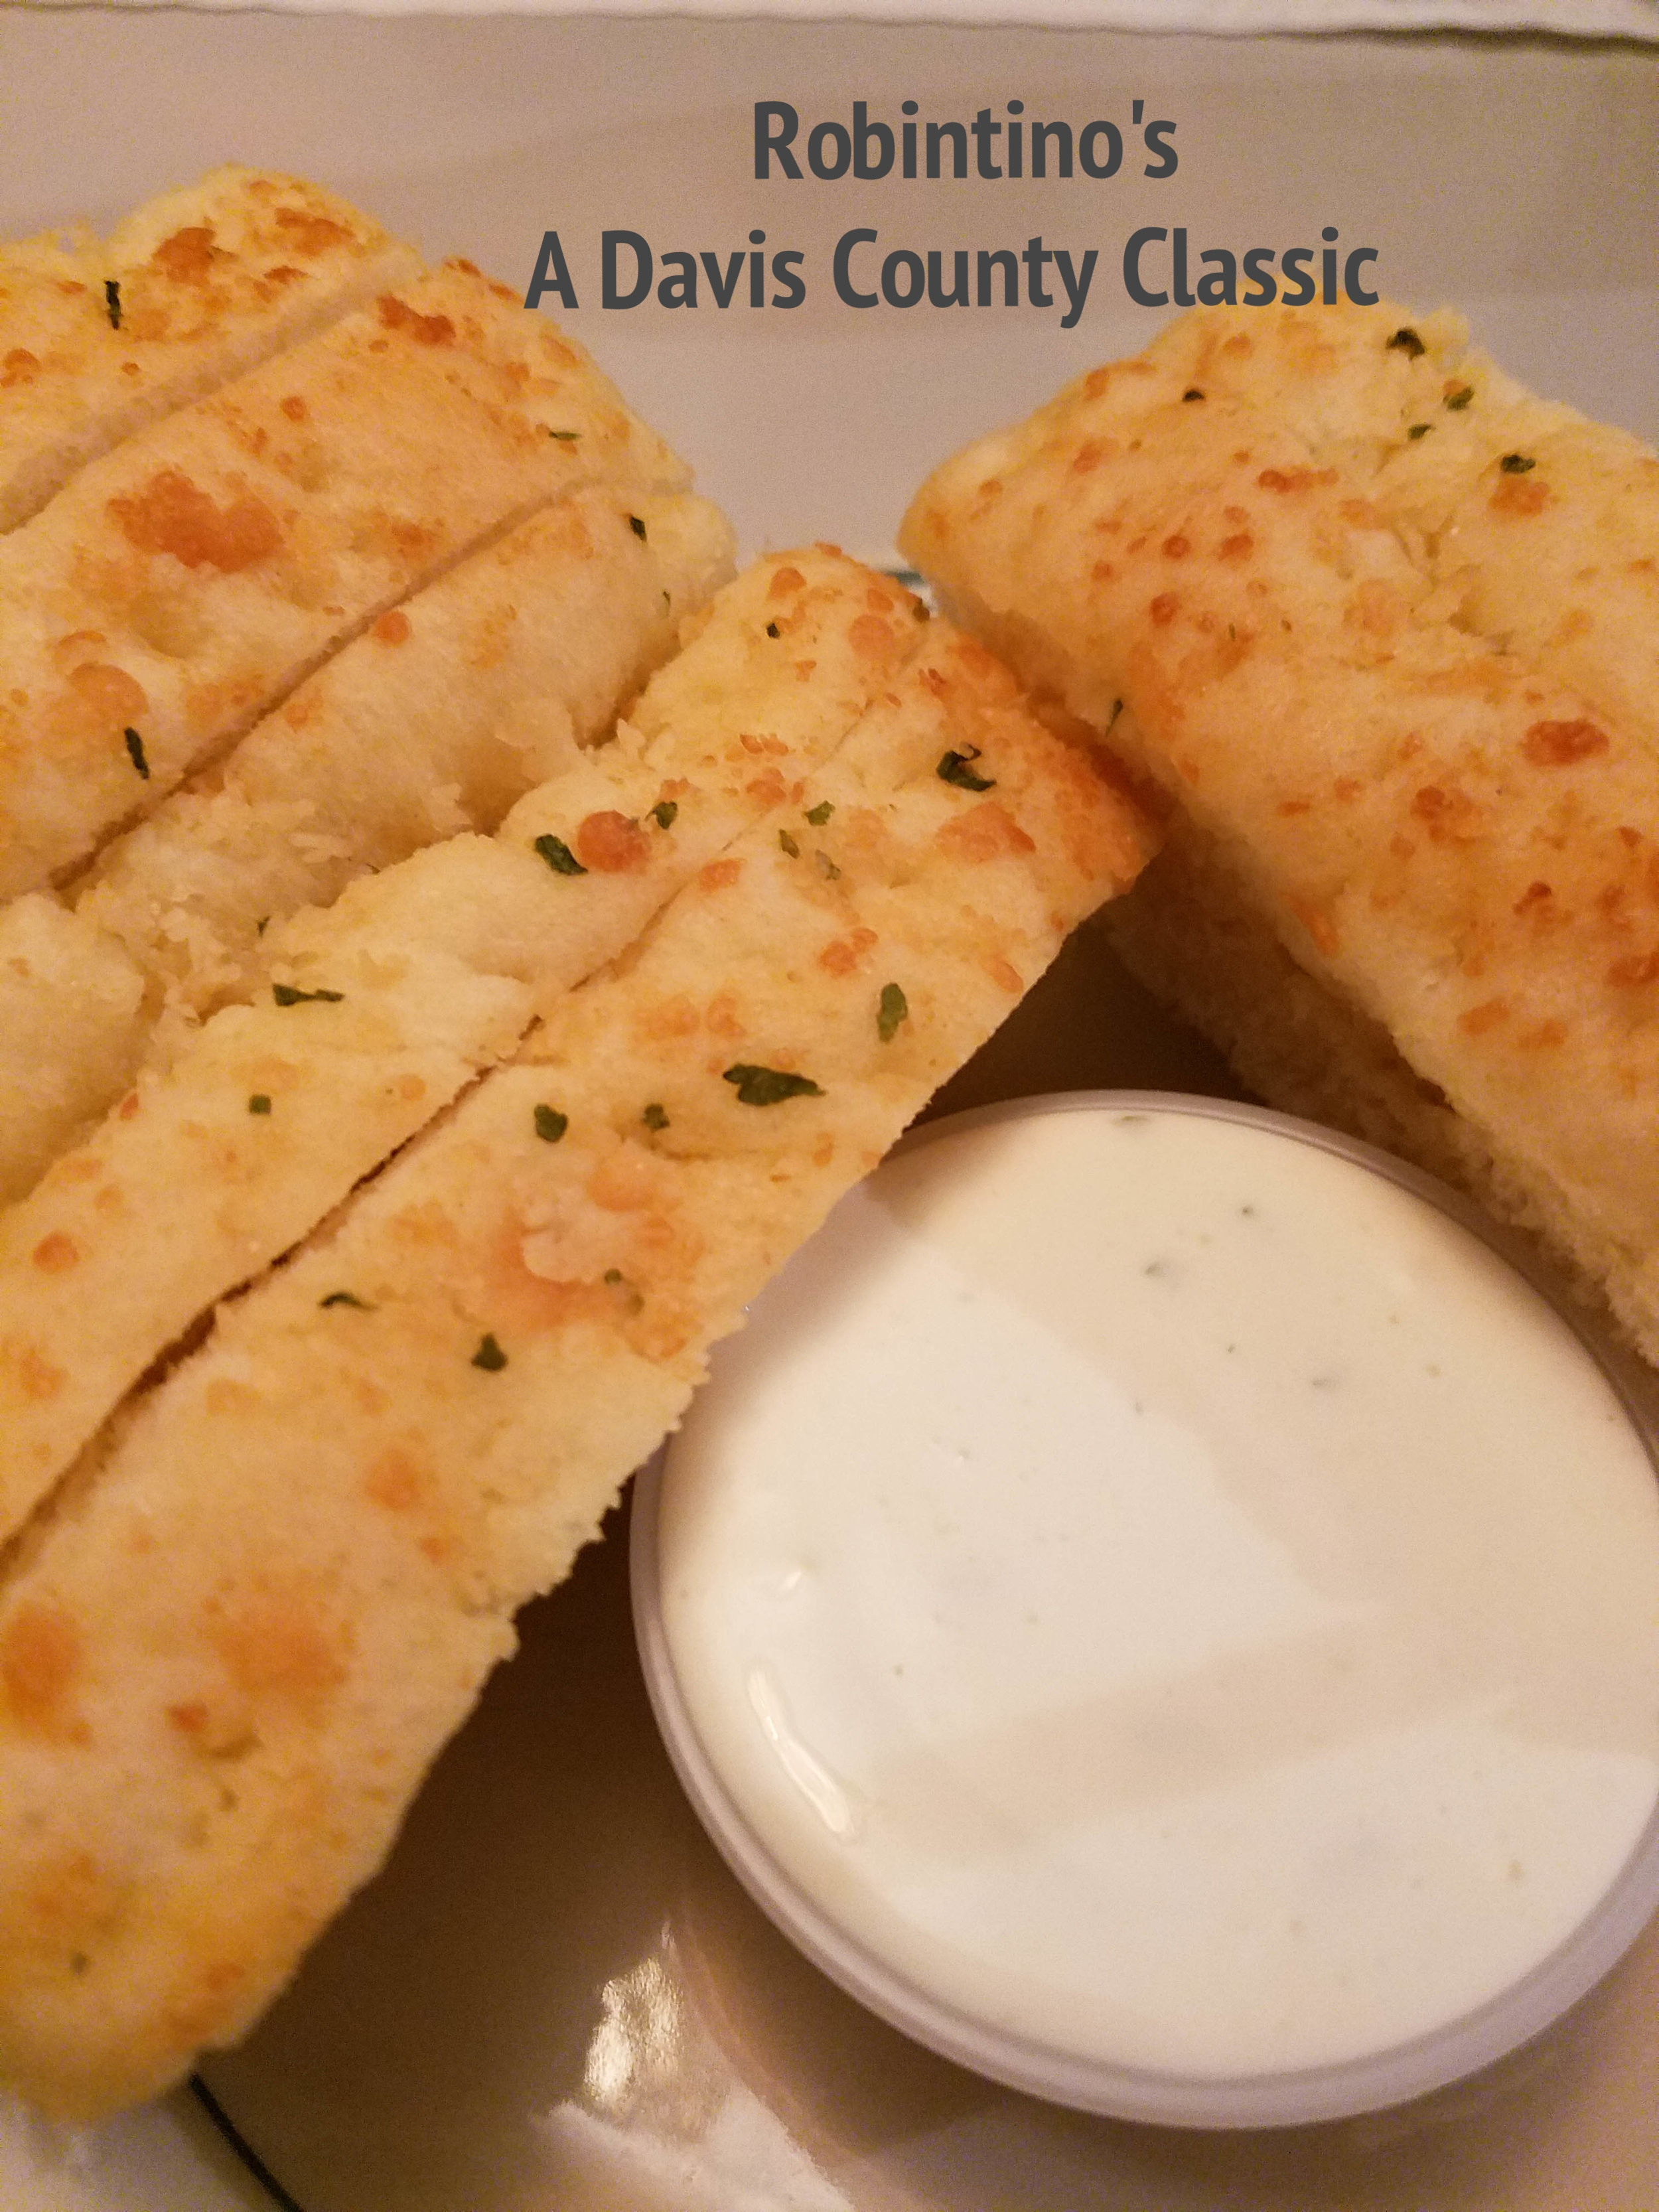 Robintino's in Davis County Utah is a family favorite and a classic stop for date night. Don't forget to order extra breadsticks!